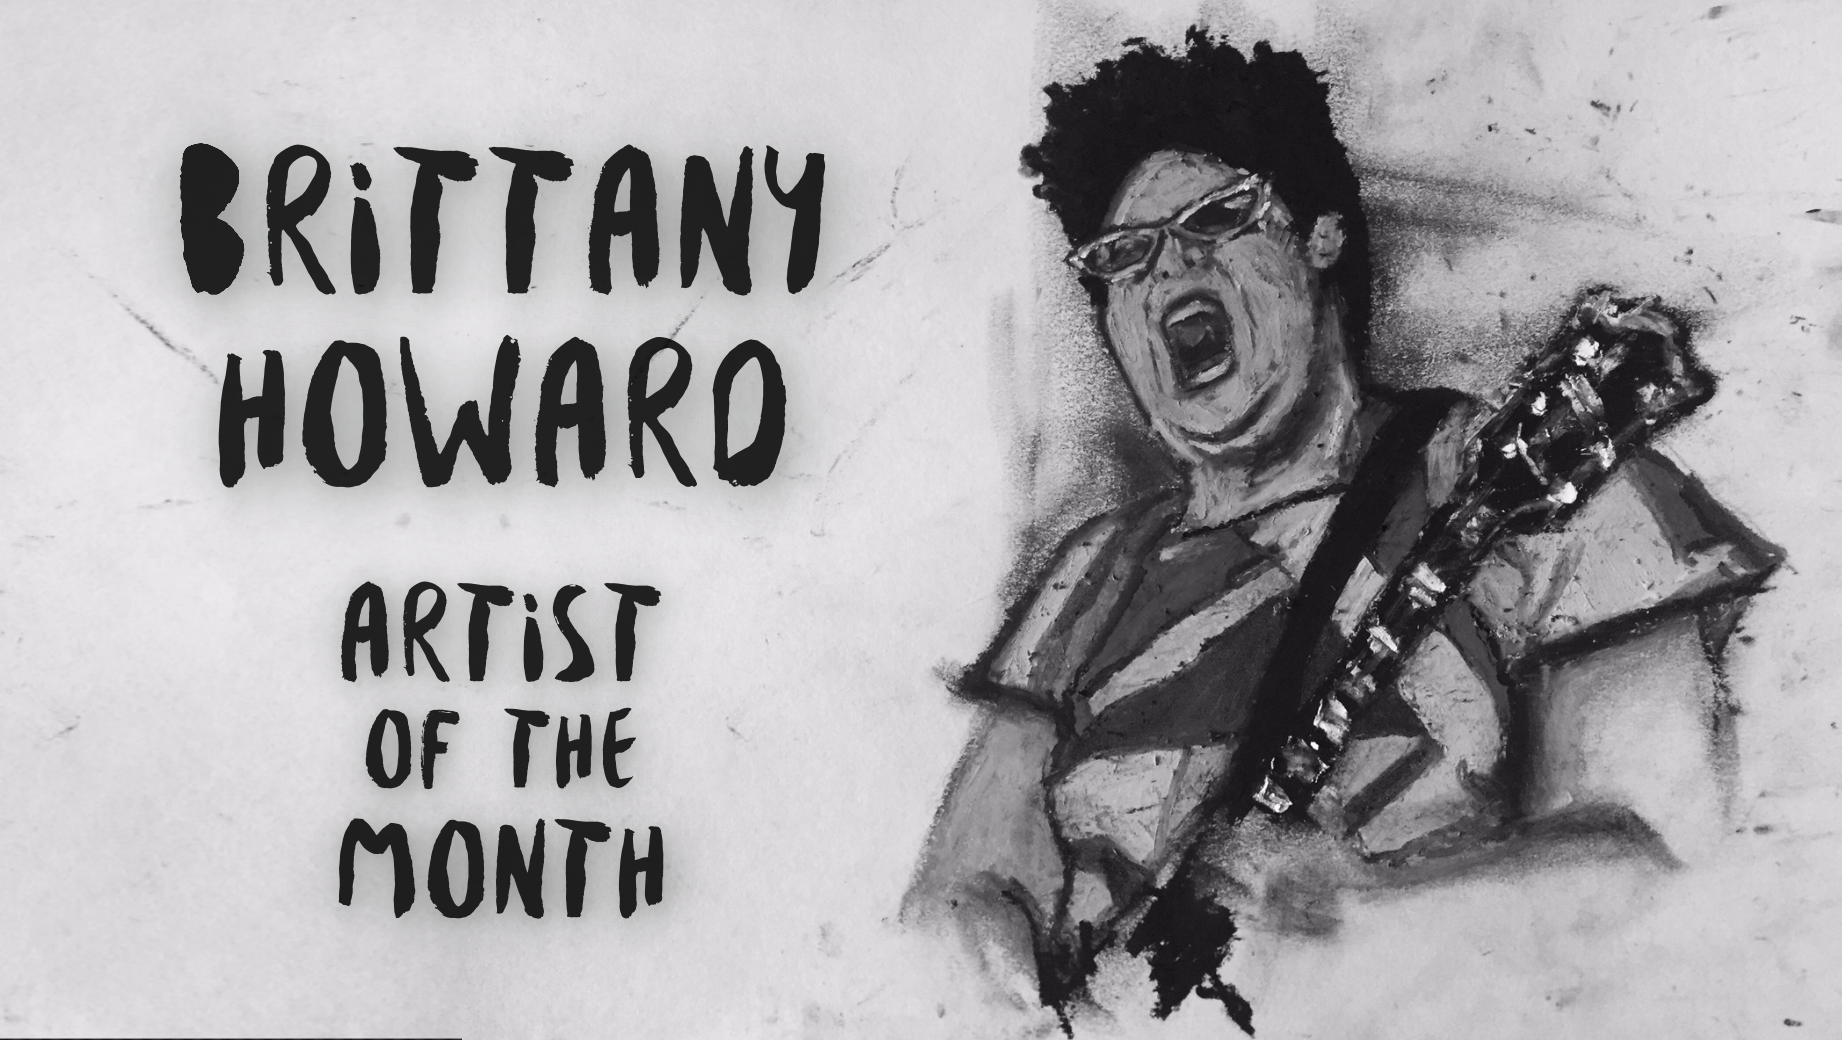 Brittany Howard Shapes 'Jaime' as a Solo Artist, Songwriter, and Producer